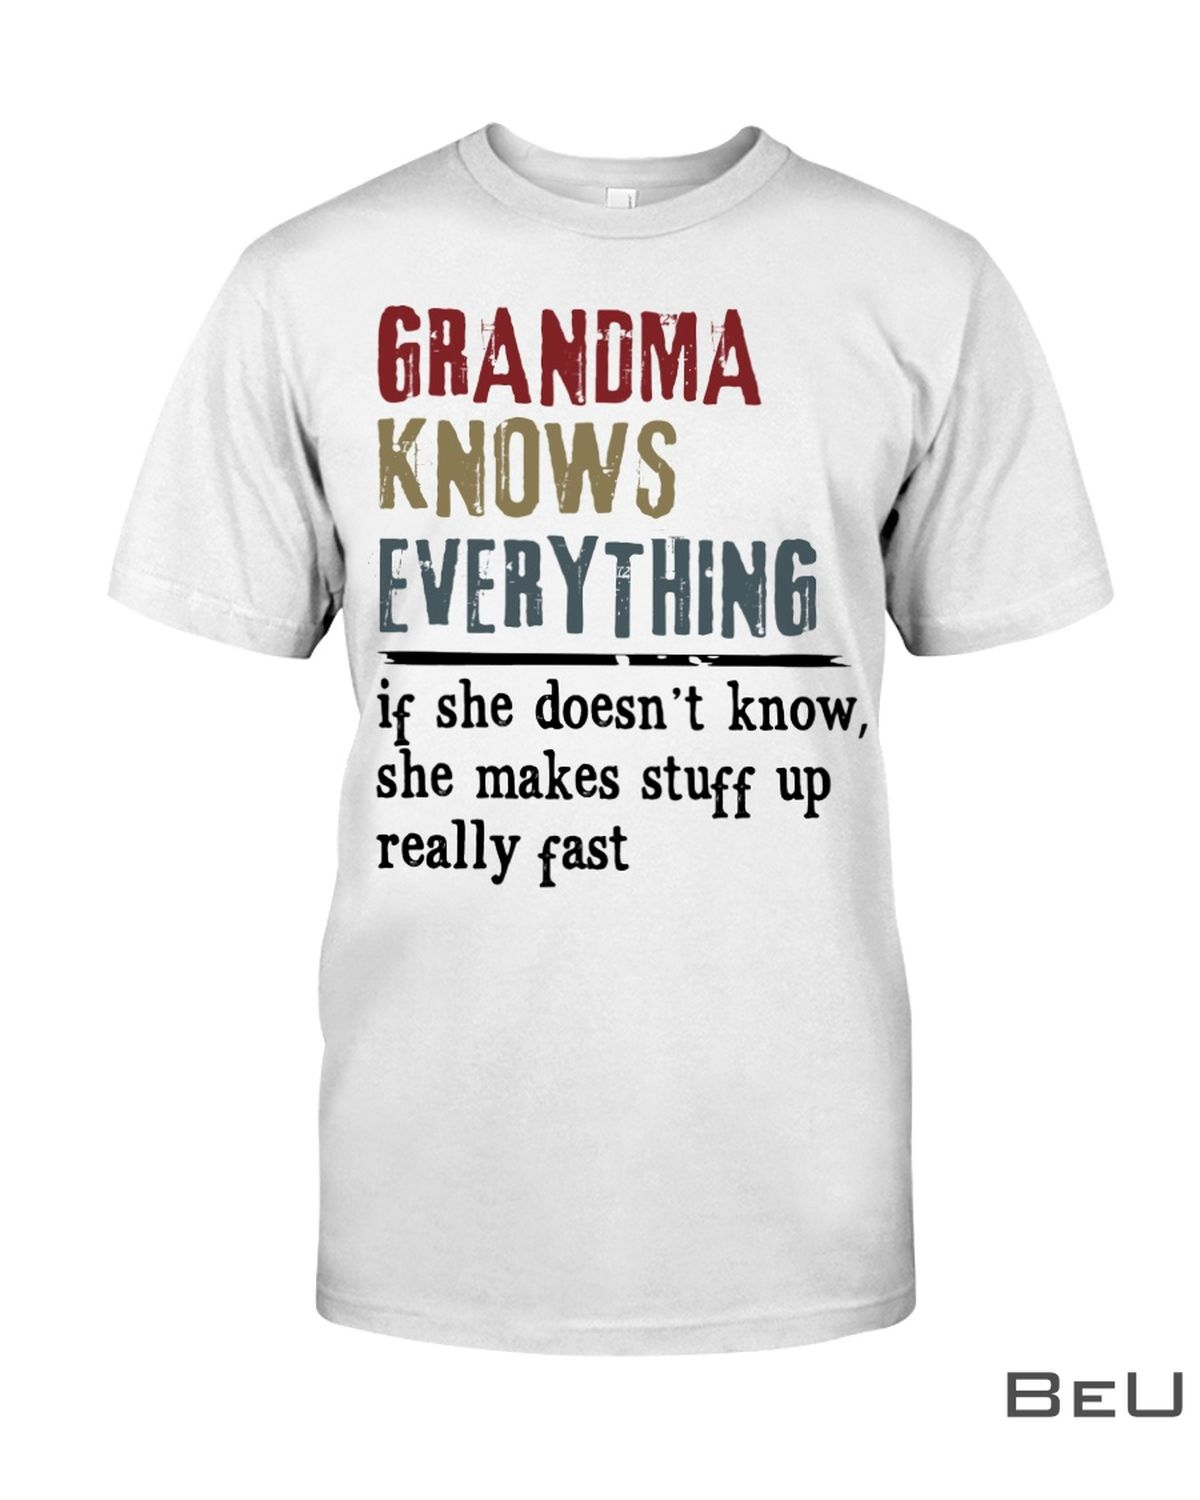 Grandma knows everything if she doesn't know she makes stuff up really fast shirt, hoodie